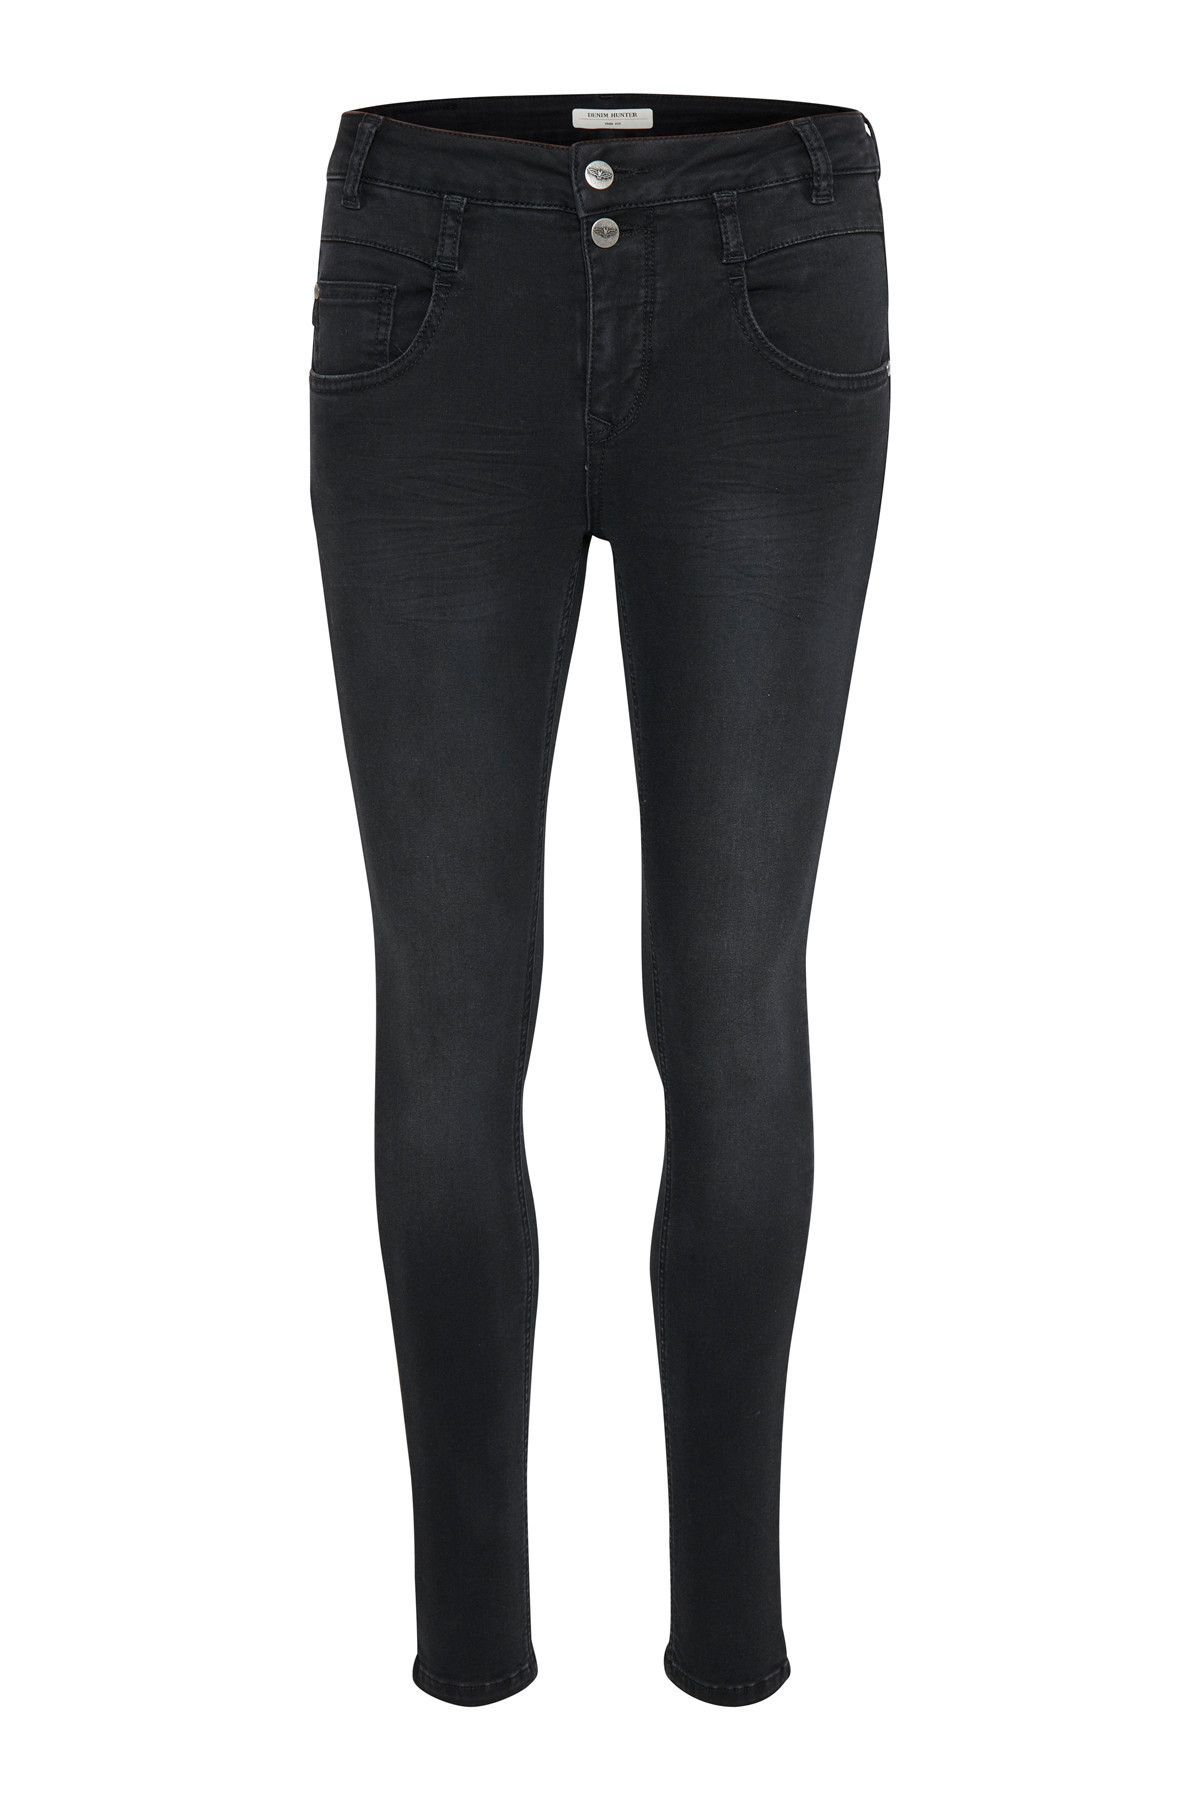 Image of   Denim Hunter FIOLA FREE JEANS 10701295 (Black Washed 36012, 32)